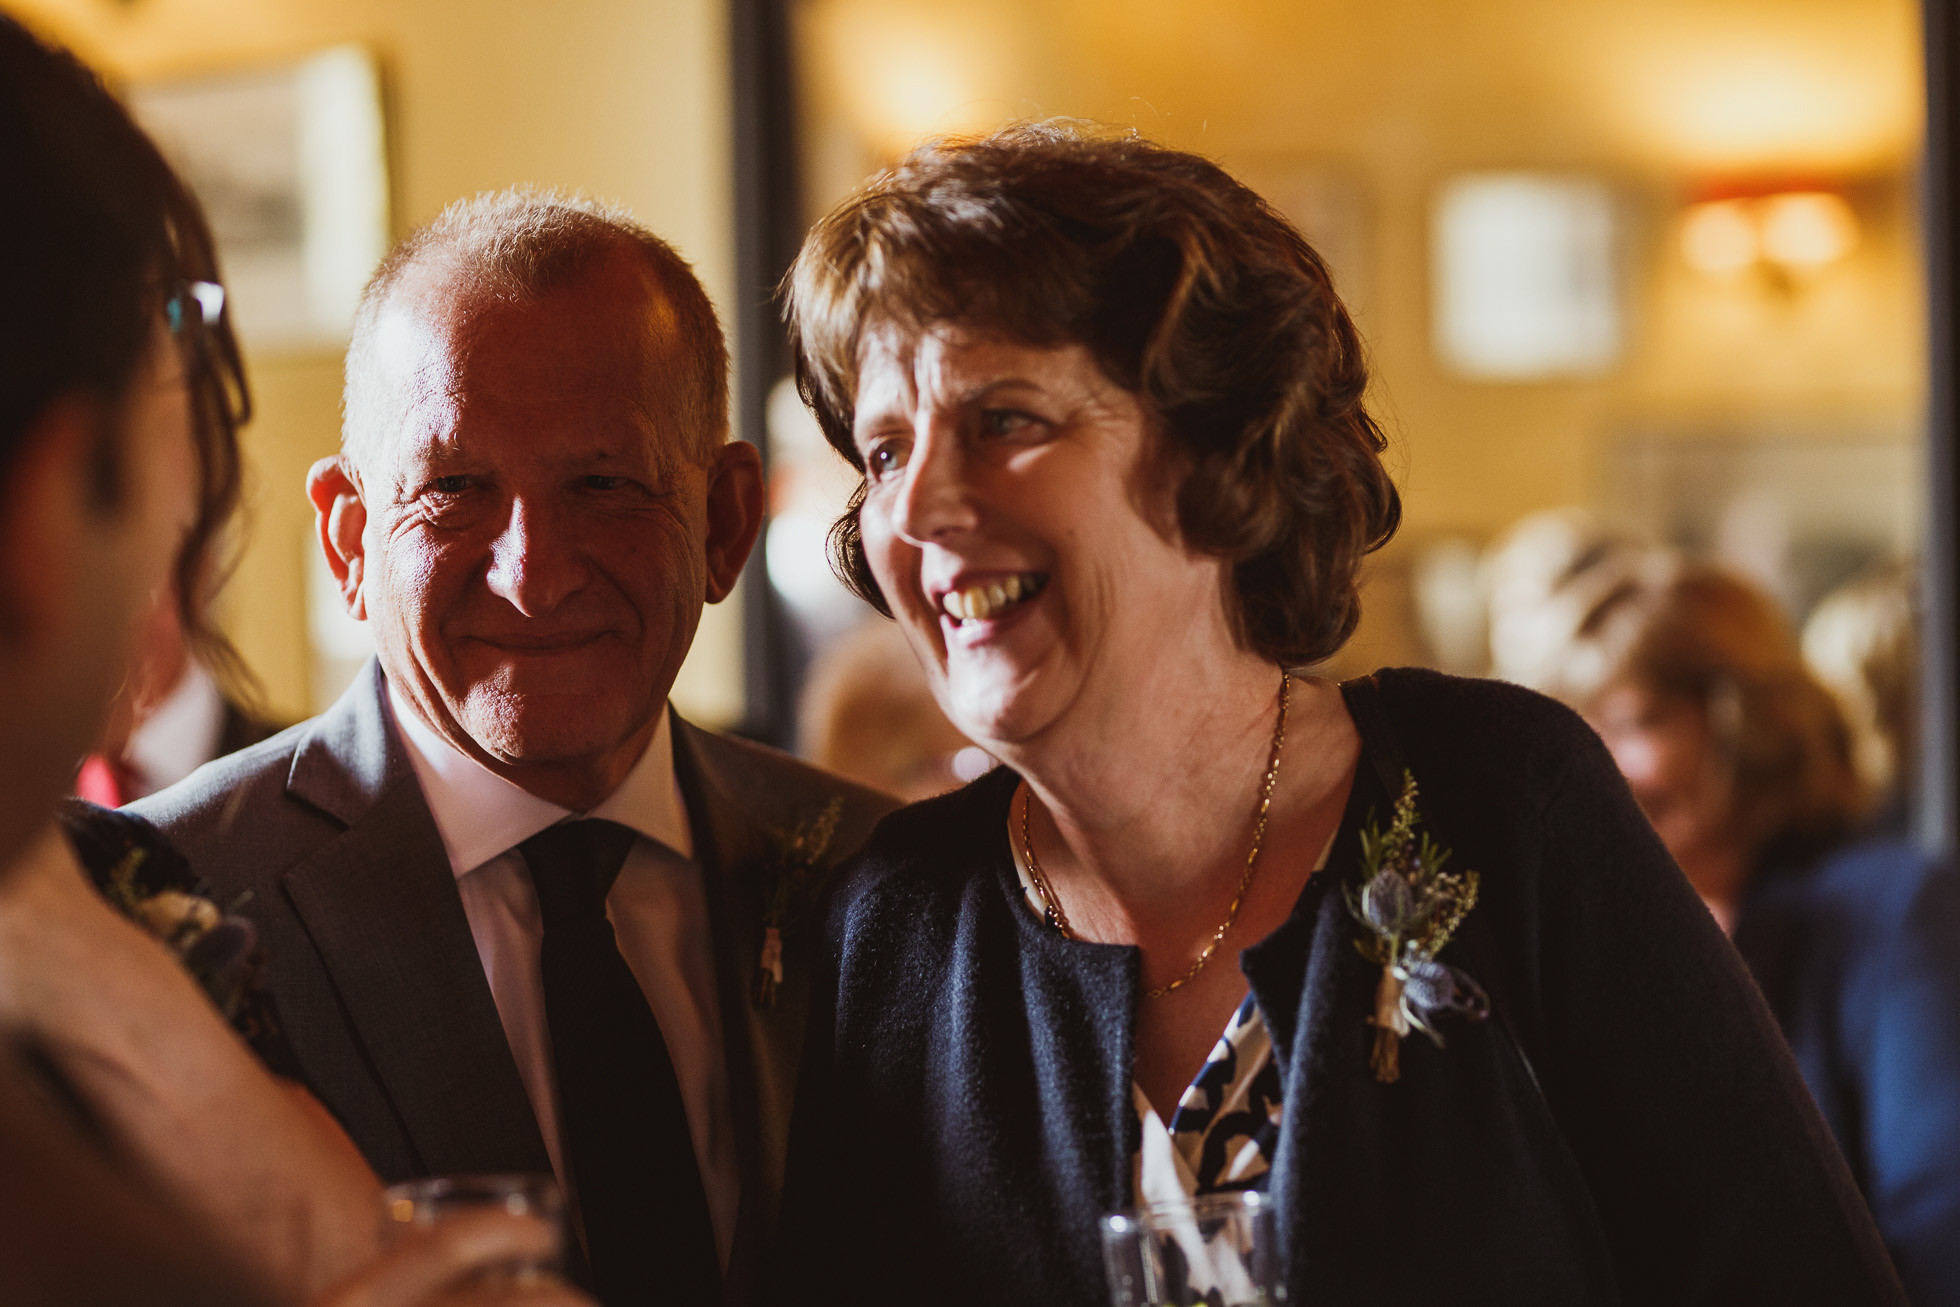 blue_lion_yorkshire_wedding_photographer-86.jpg